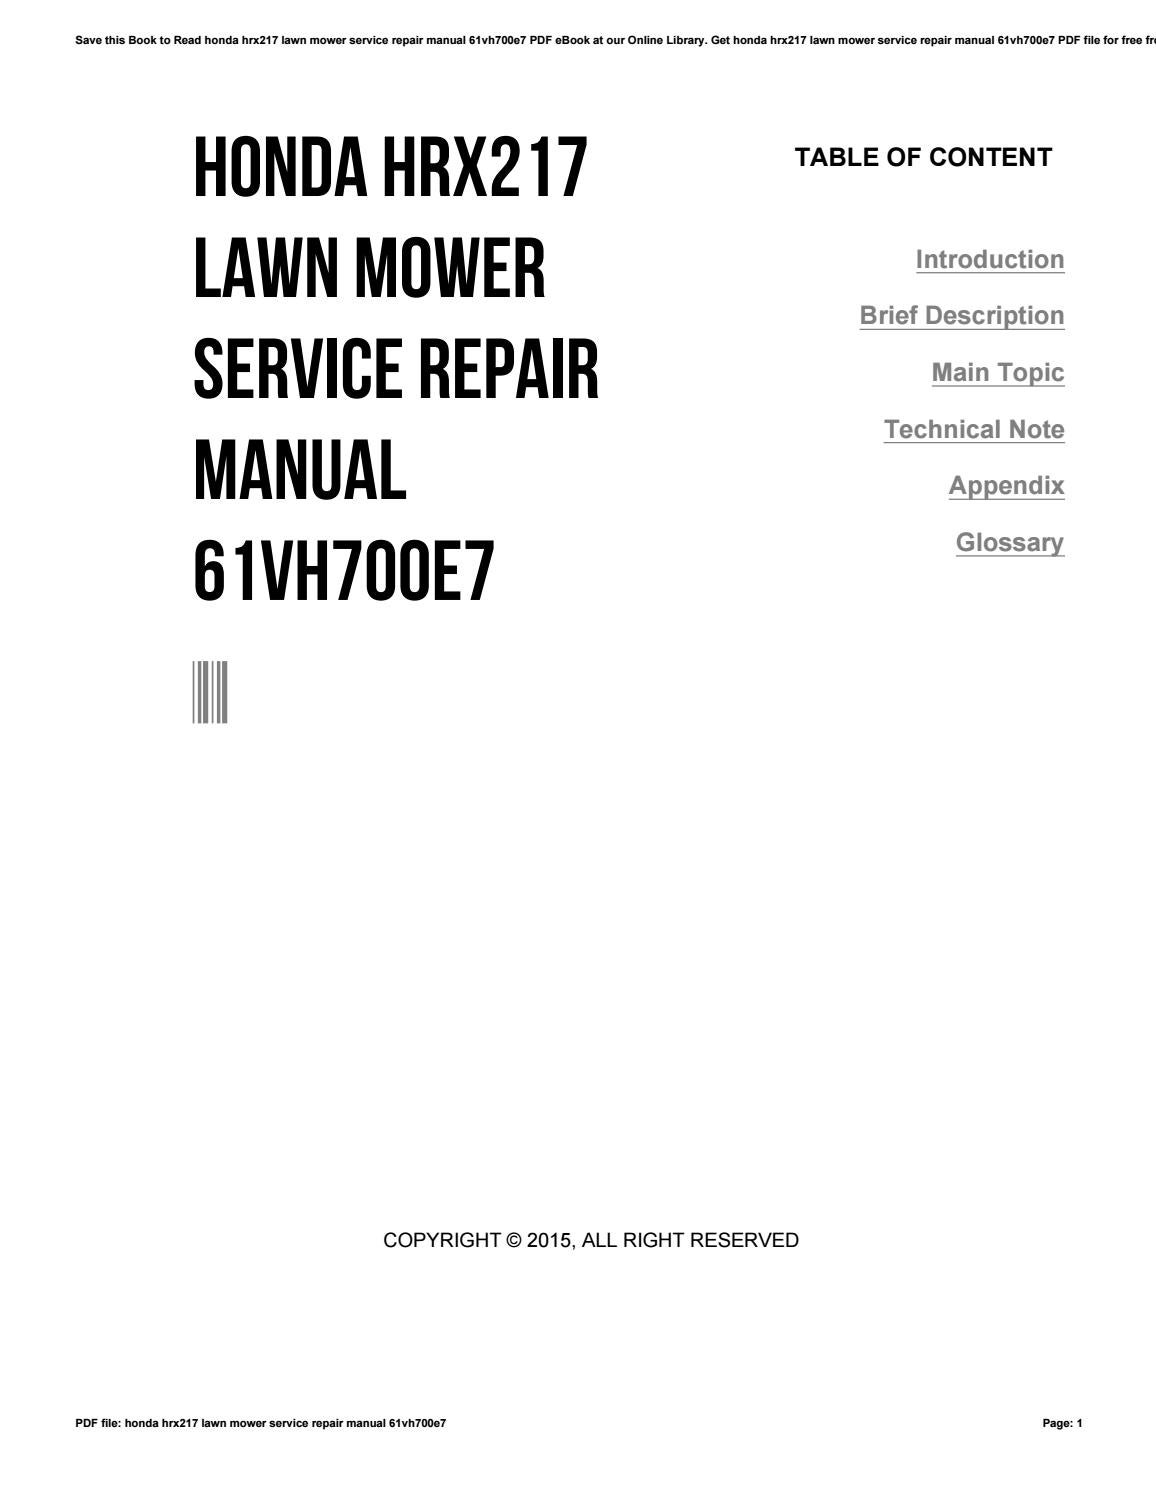 honda hrx217 lawn mower service repair manual 61vh700e7 by ty780 issuu